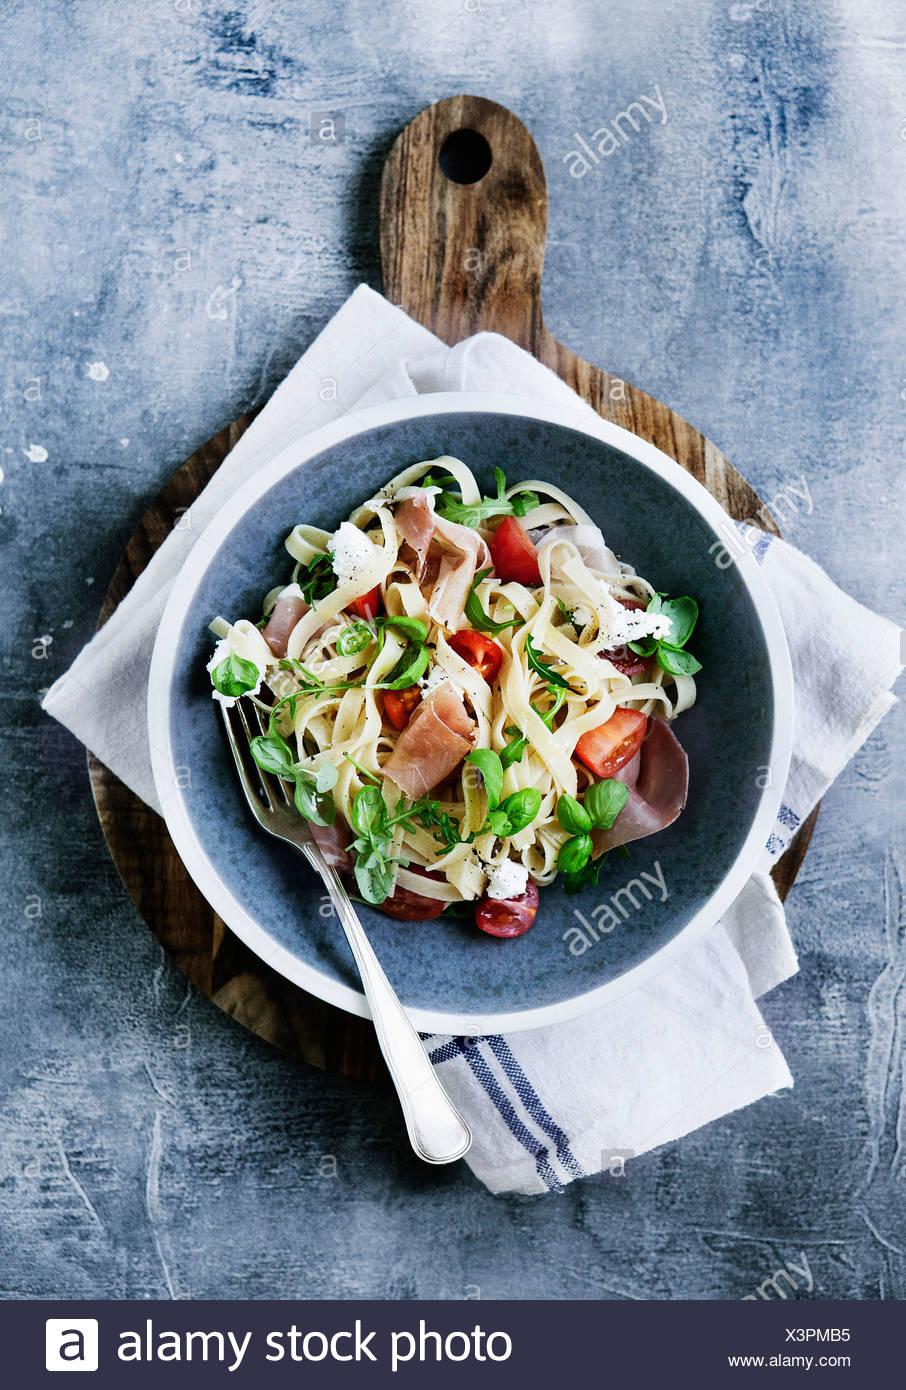 Plate of pasta with vegetables - Stock Image